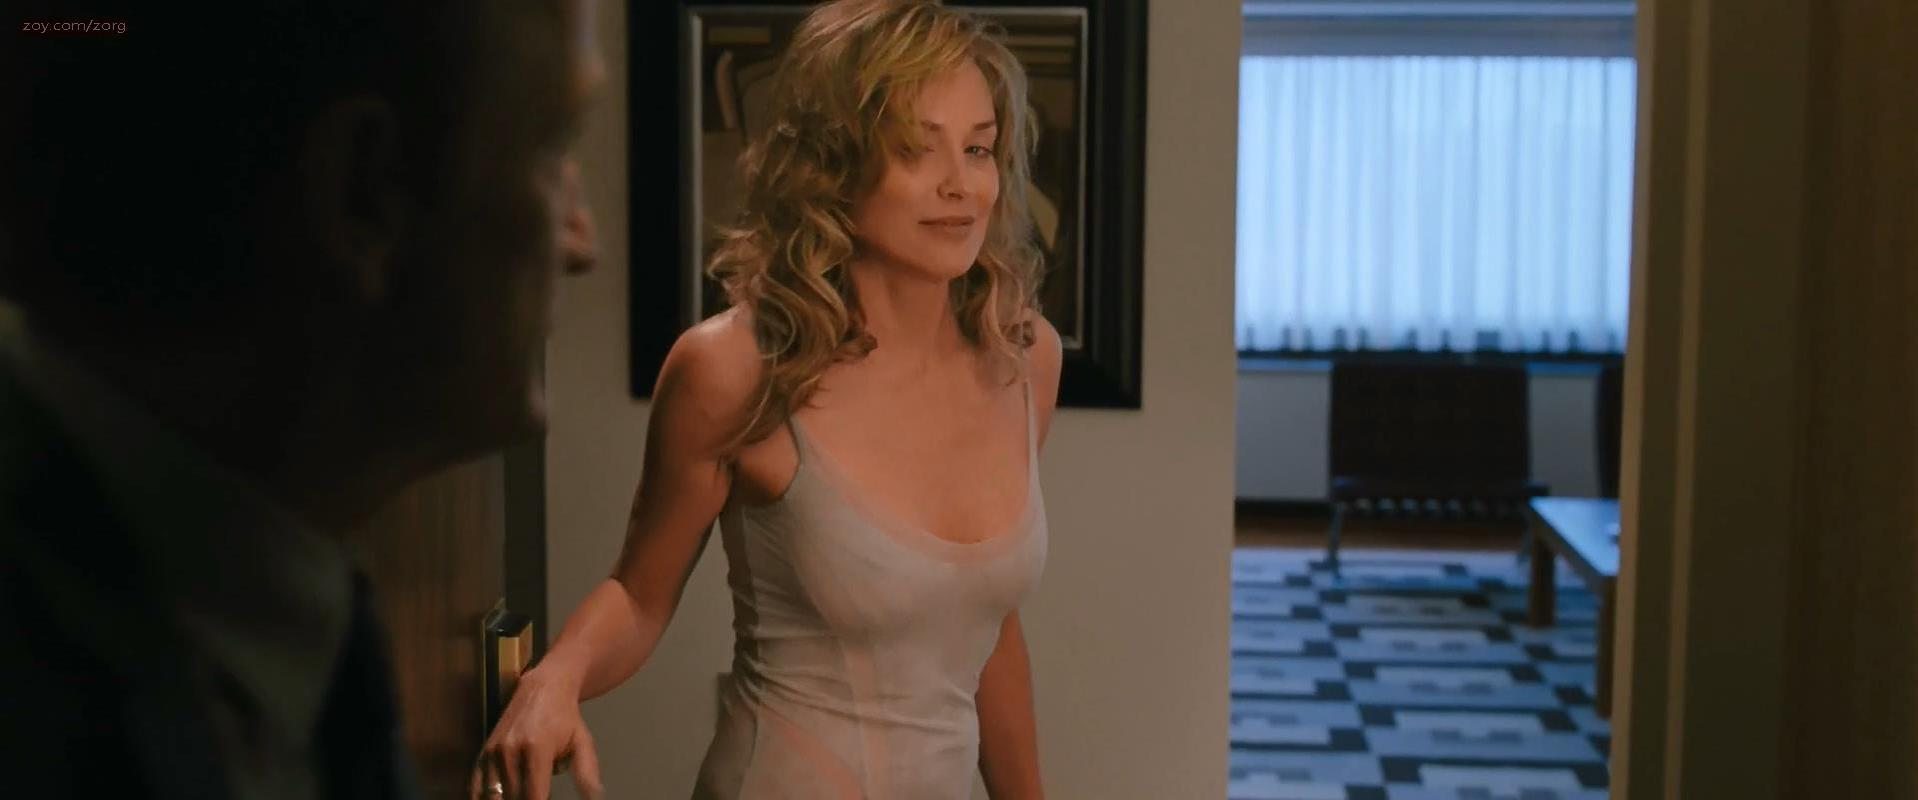 Nude Images Of Sharon Stone